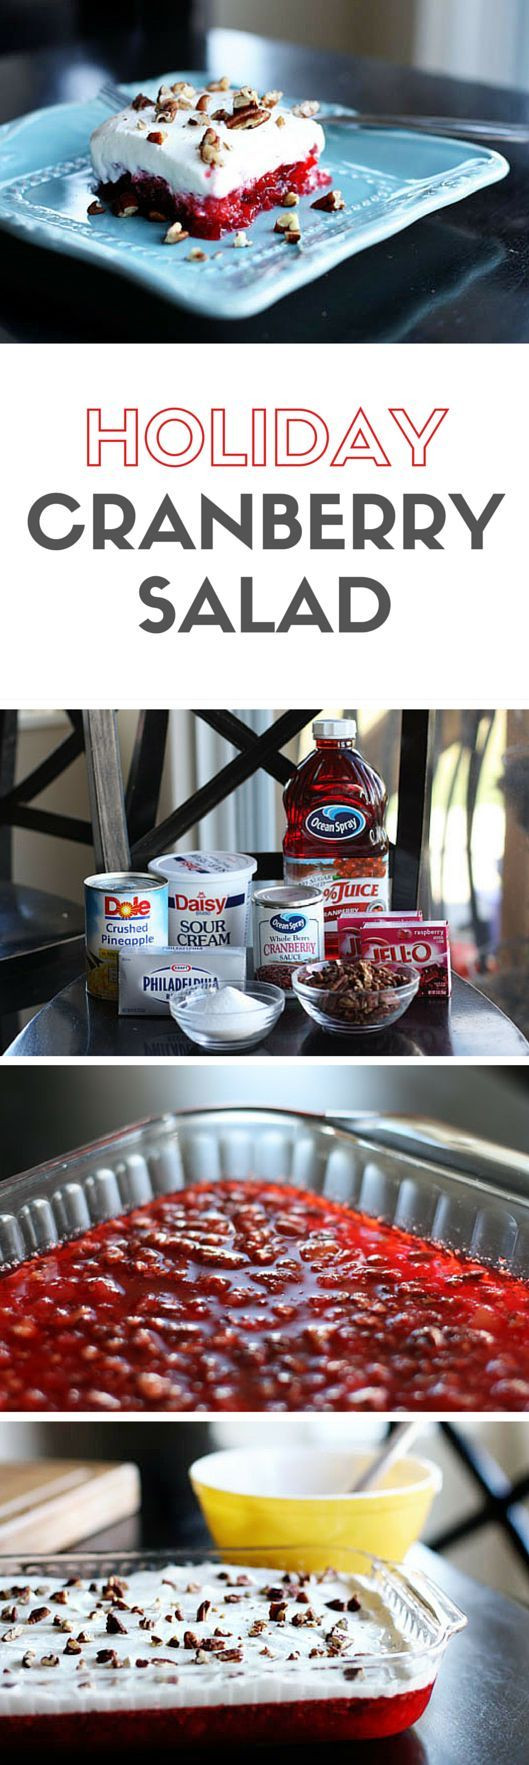 Jello Salads For Thanksgiving Dinner  1000 ideas about Jello Salads on Pinterest